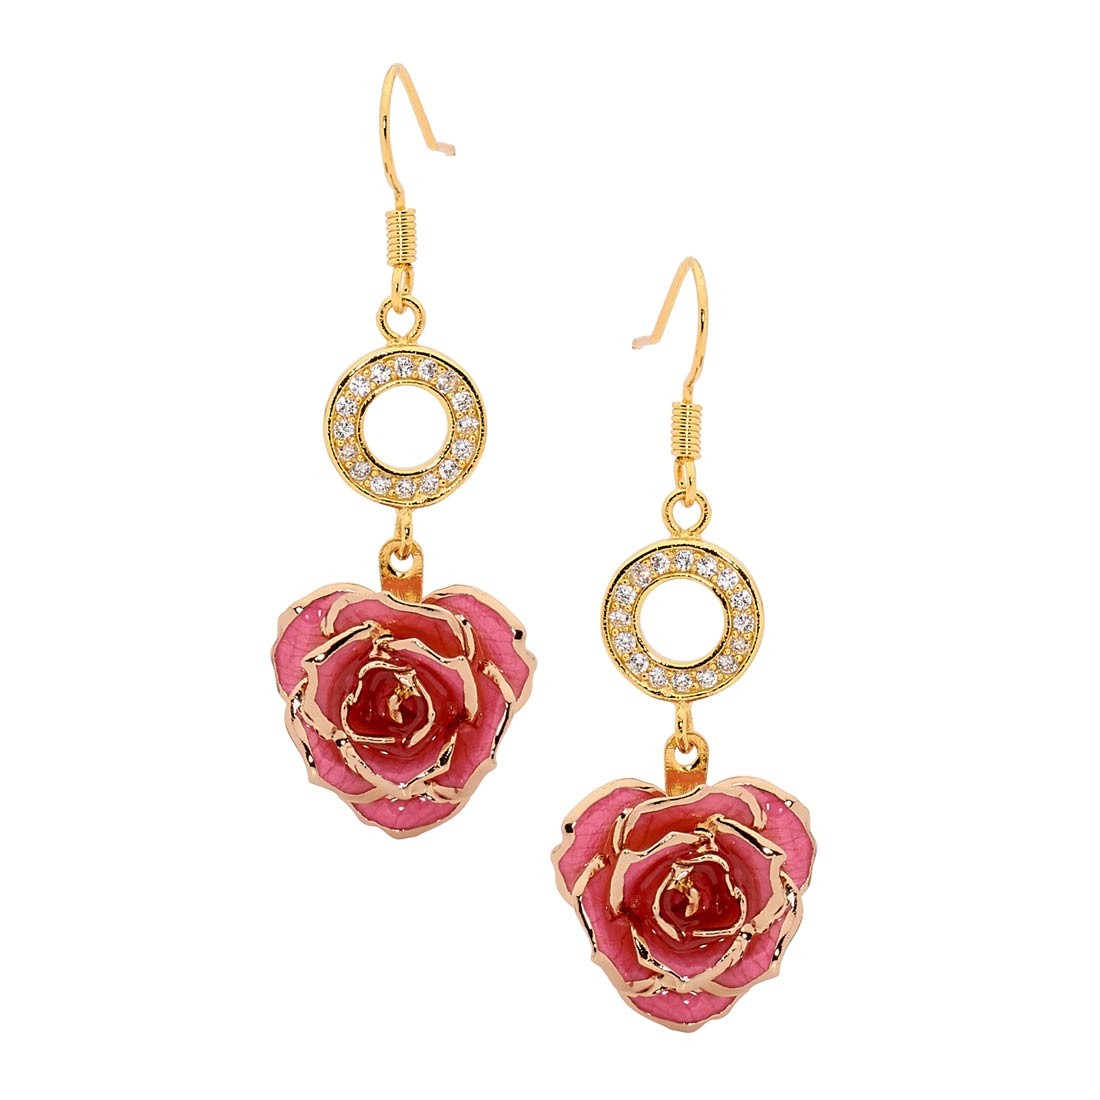 Pink Glazed Rose Earrings in 24K Gold e75b8dba18